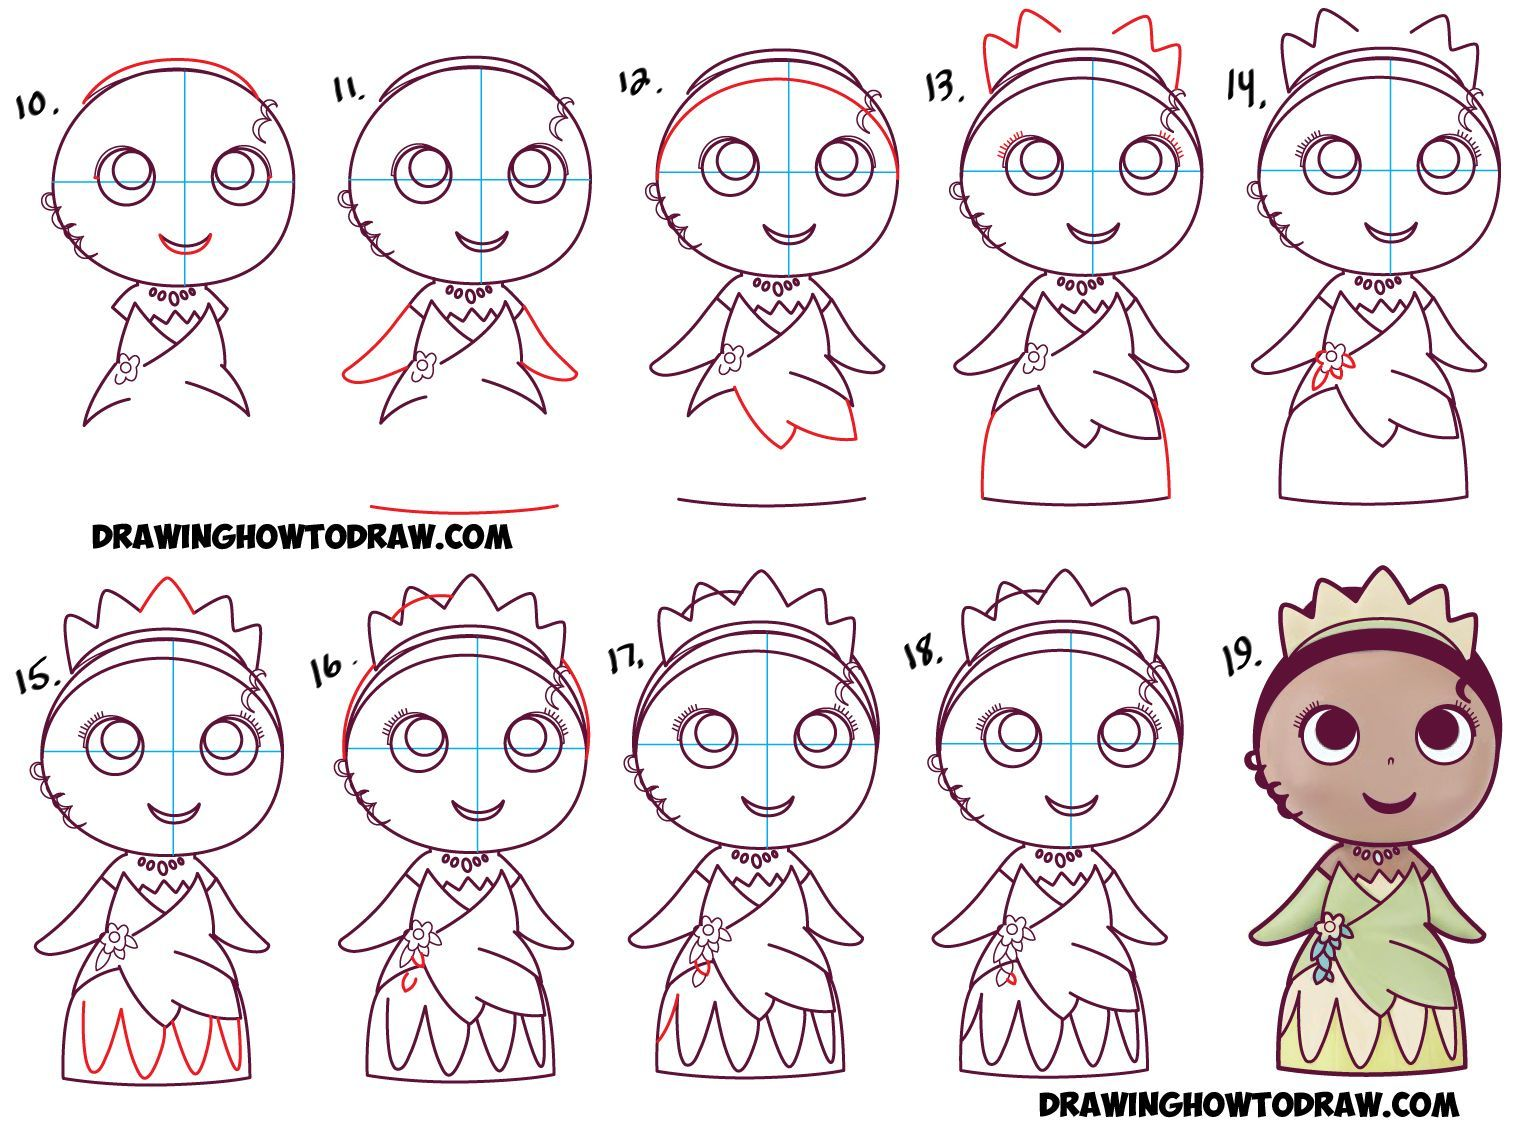 Learn How To Draw Cute Baby Chibi Kawaii Tiana The Disney Princess Simple Steps Drawing Lesson Disney Princess Drawings Easy Disney Drawings Princess Drawings